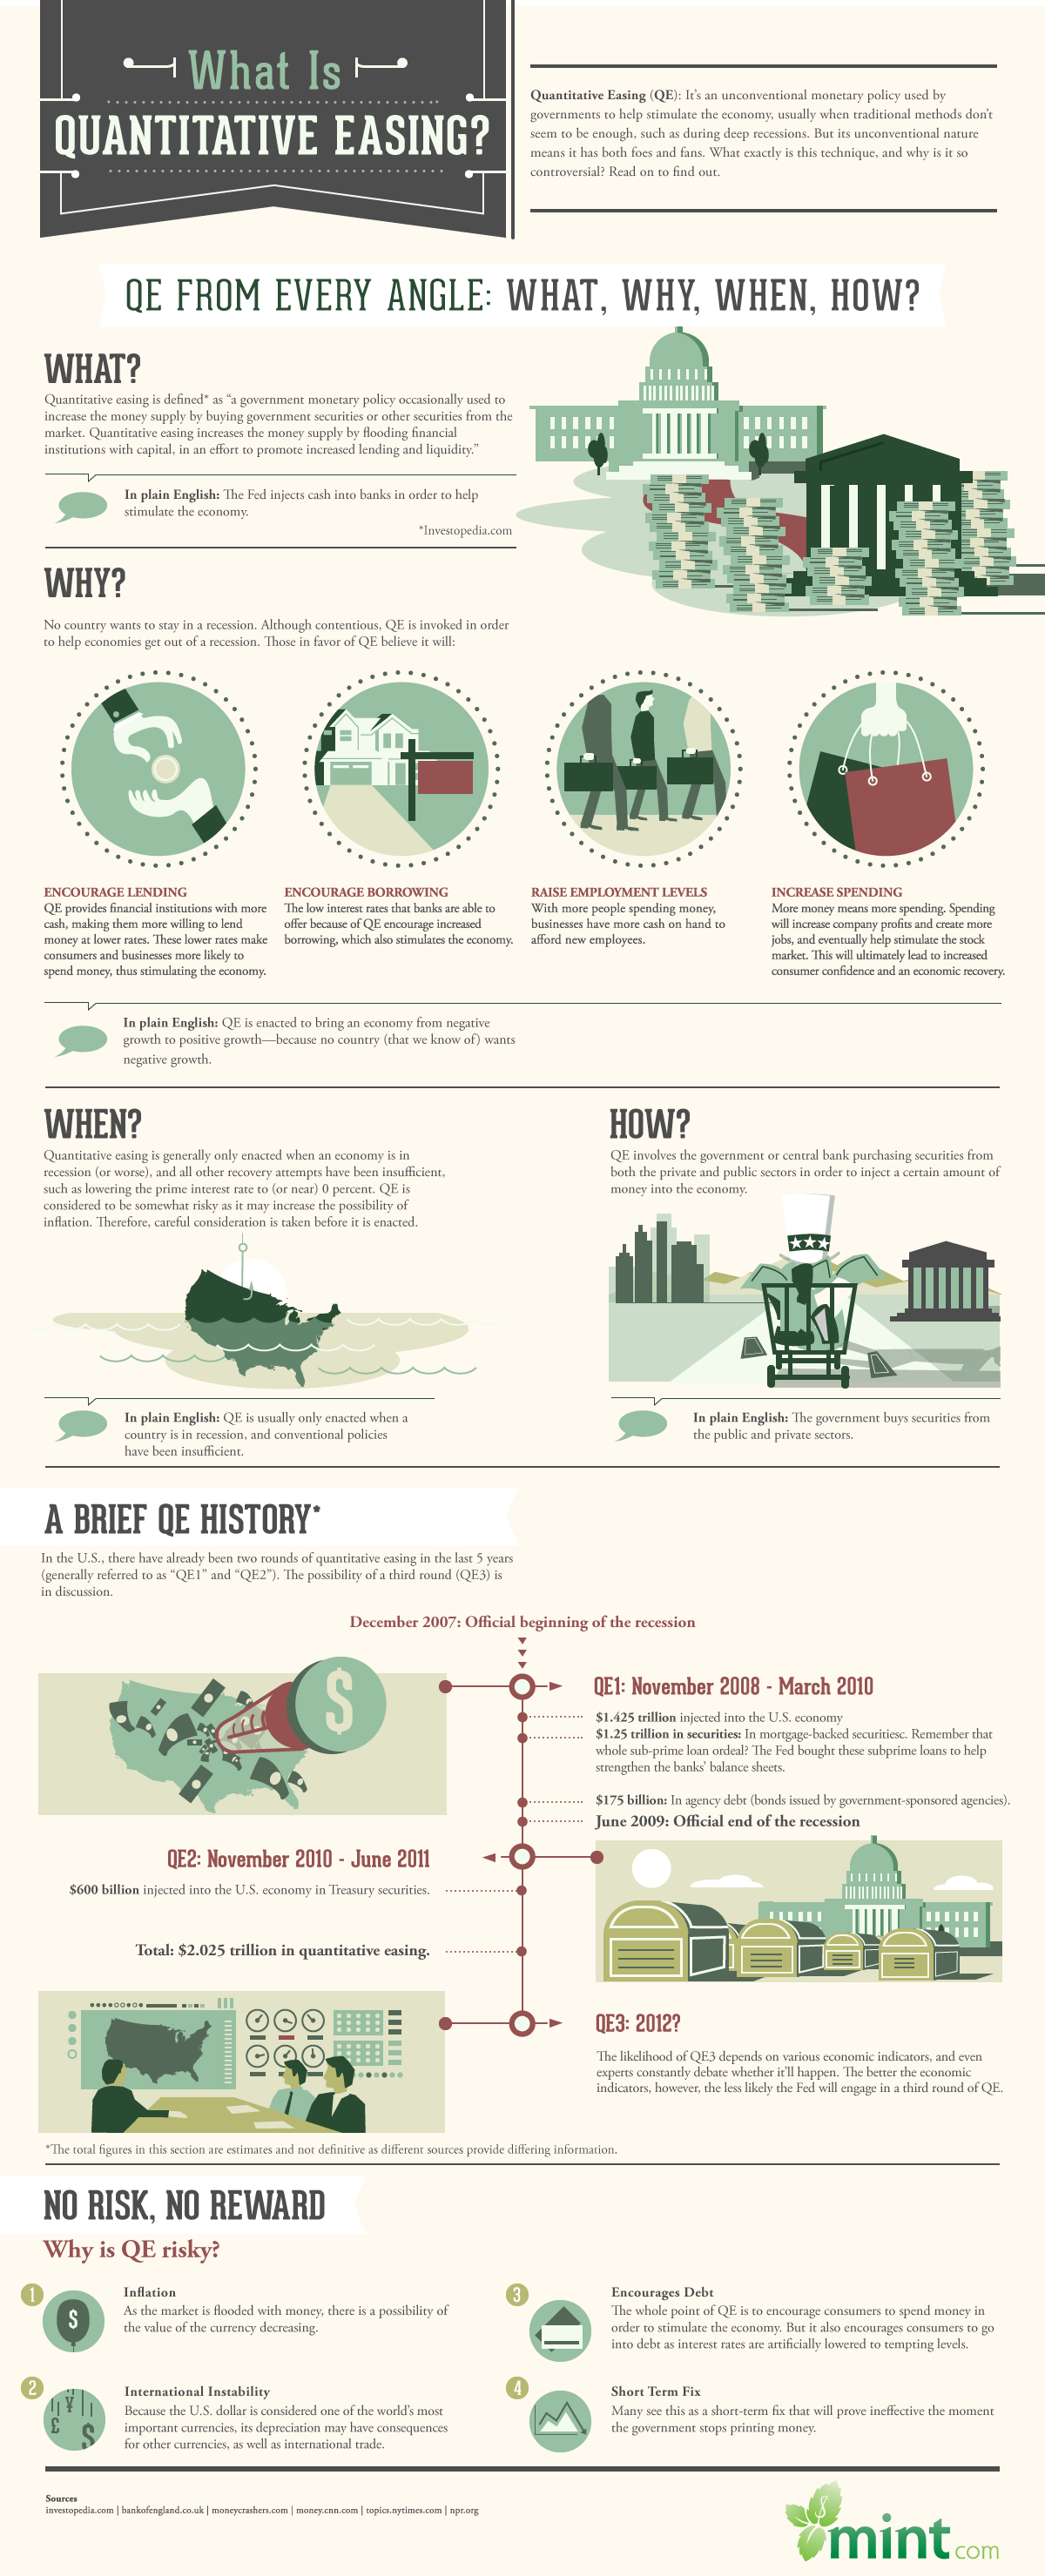 Infographic: What is Quantitative Easing?